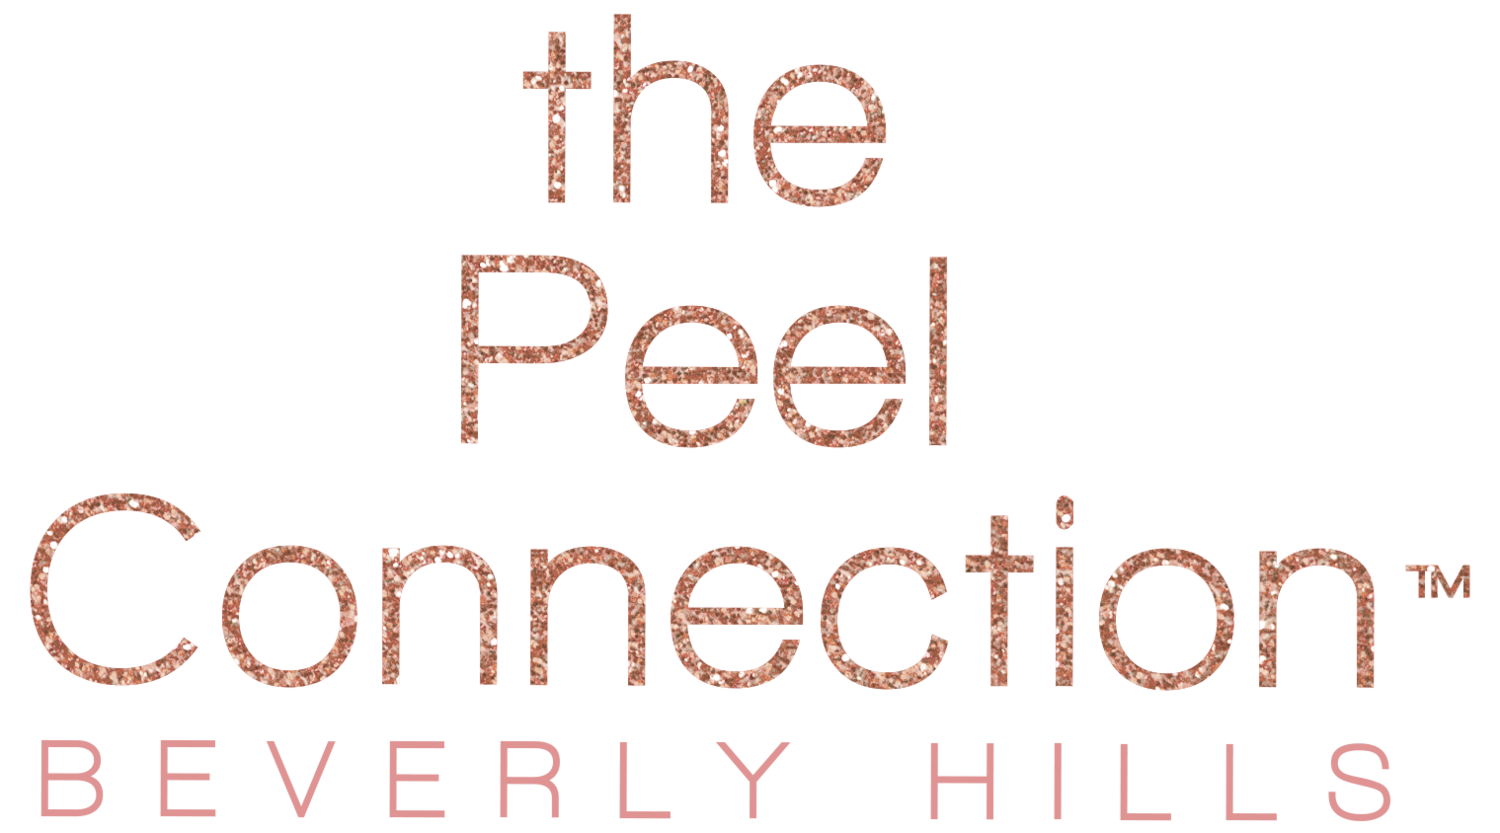 The Peel Connection